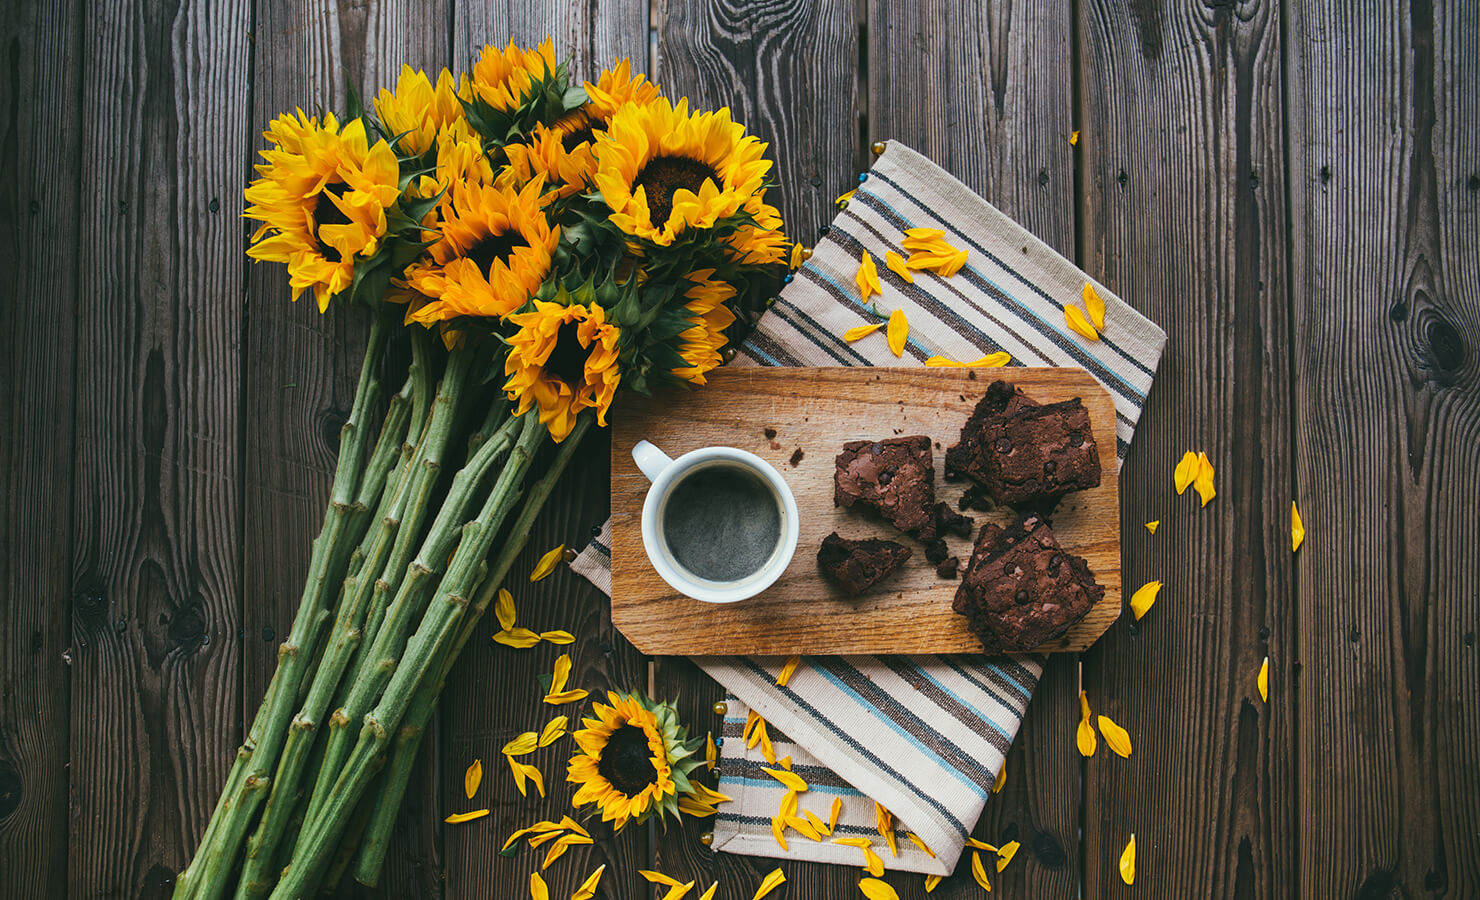 sunflower-meaning-flatlay-feature-01